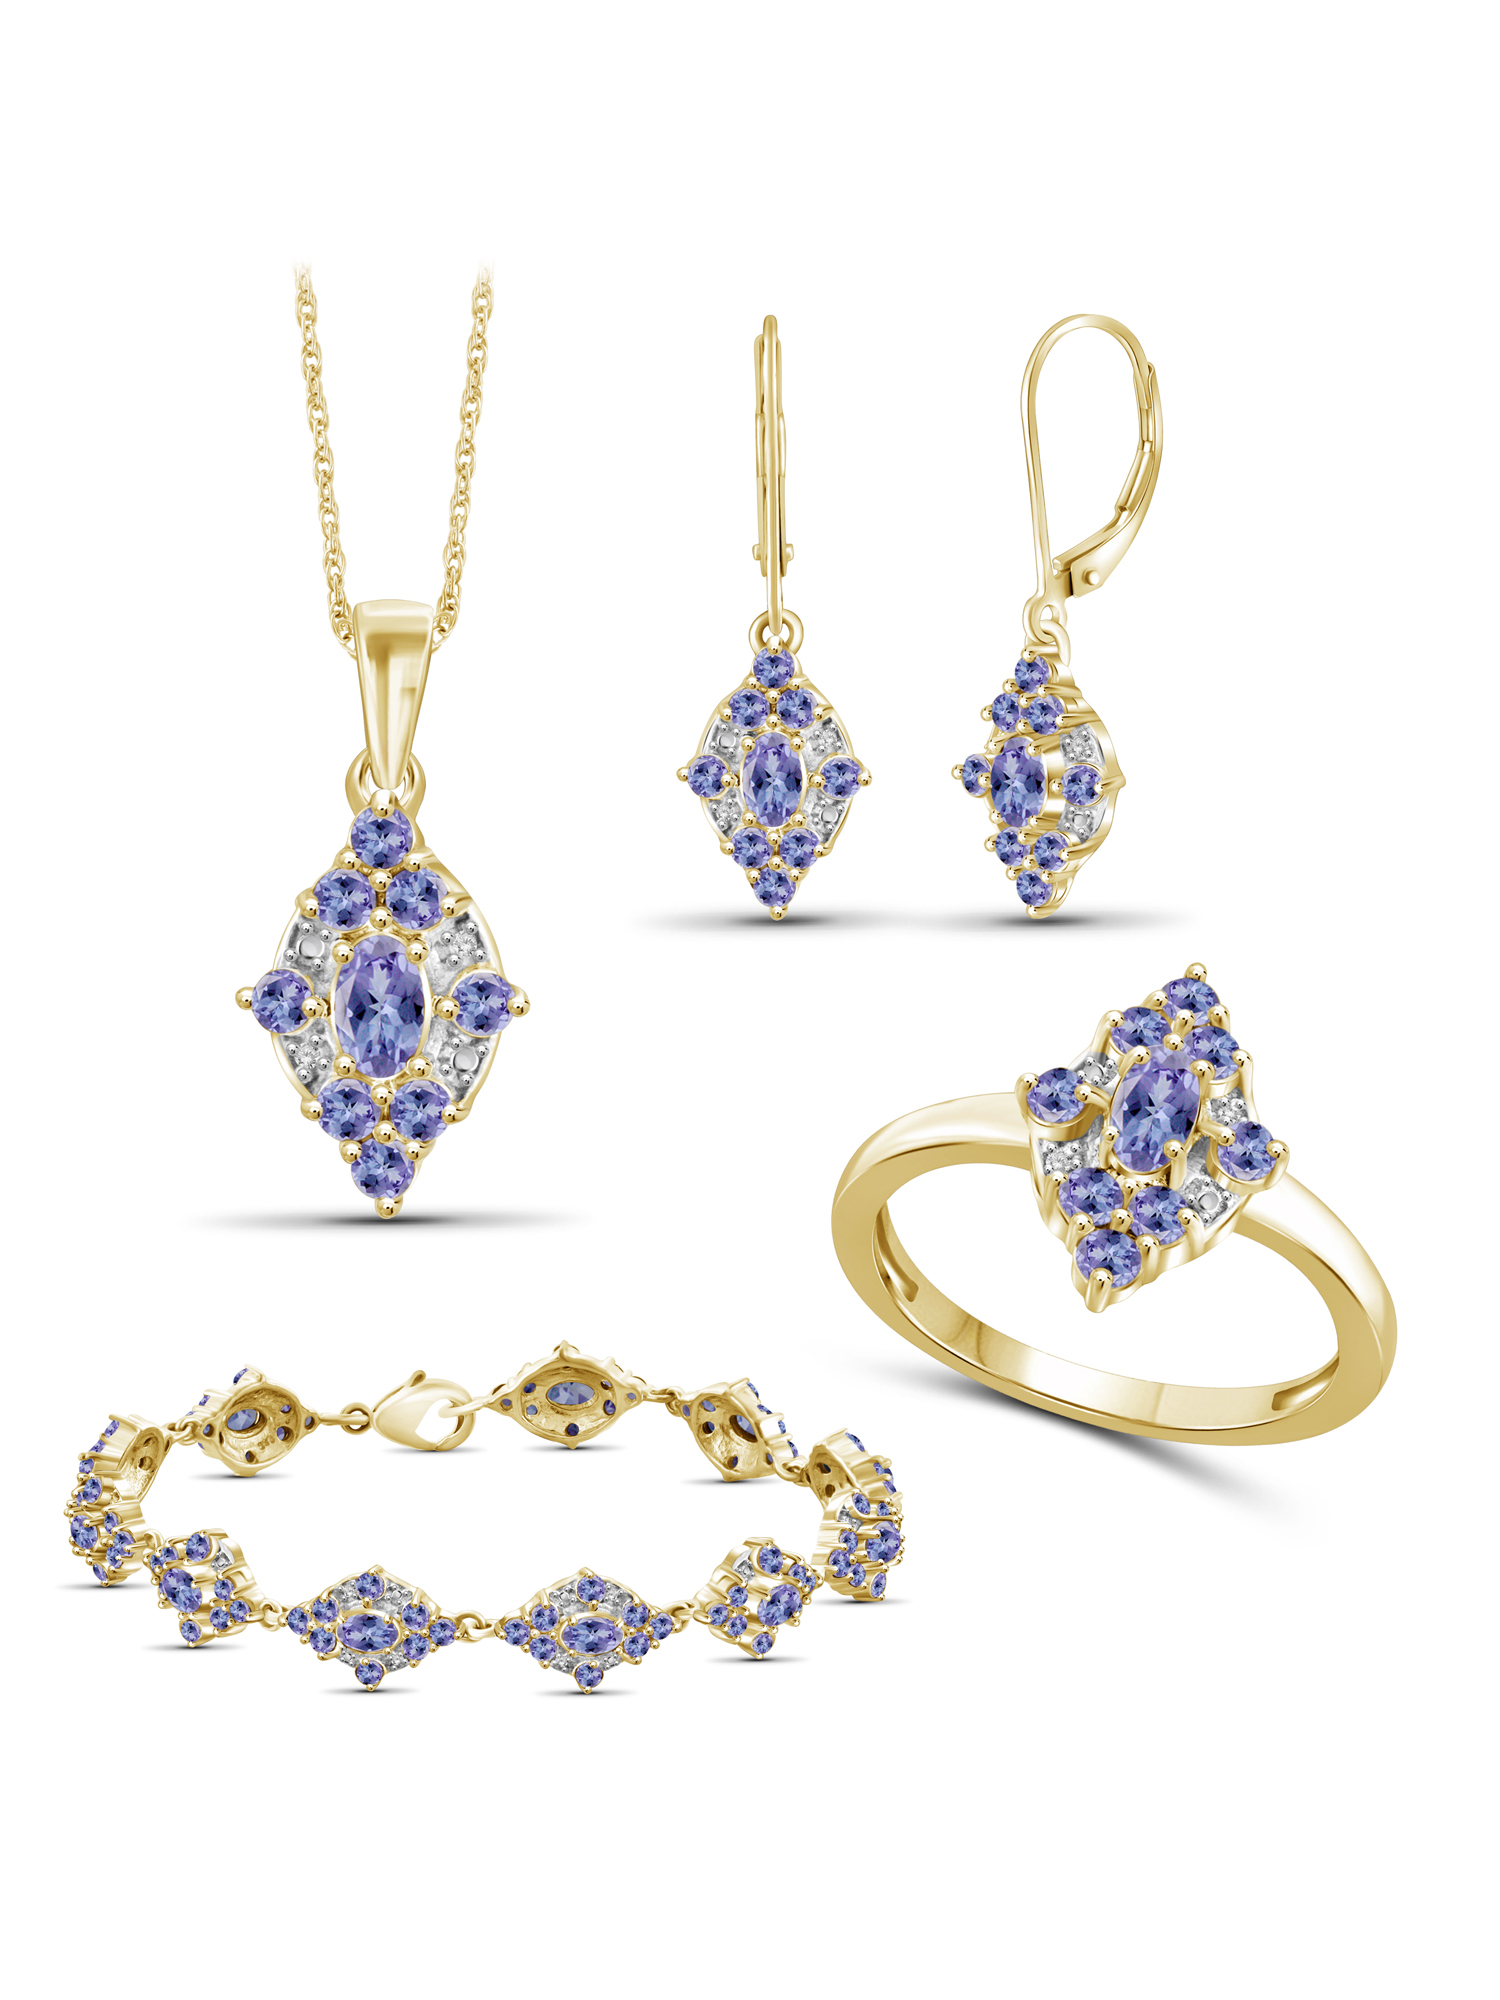 JewelersClub 8 1/2 Carat T.G.W. Tanzanite And White Diamond Accent 14k Gold Over Silver 4-Piece Jewelry set